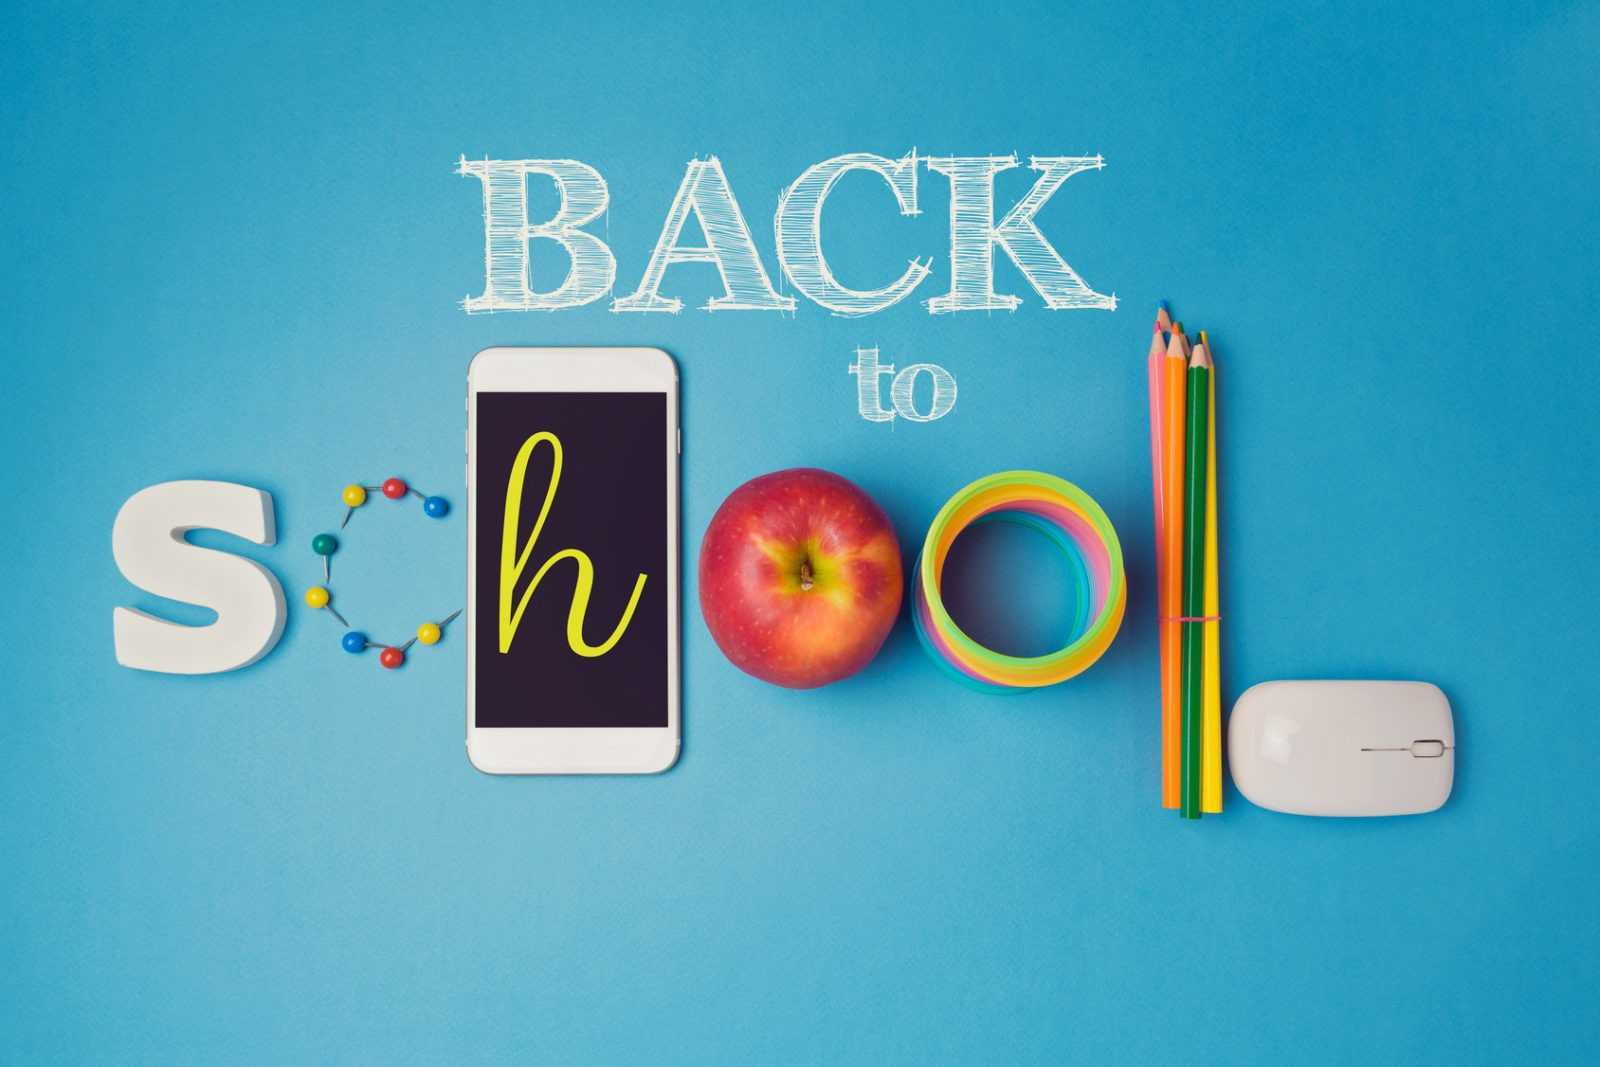 Back to school creative design with smartphone, apple and school supplies. View from above